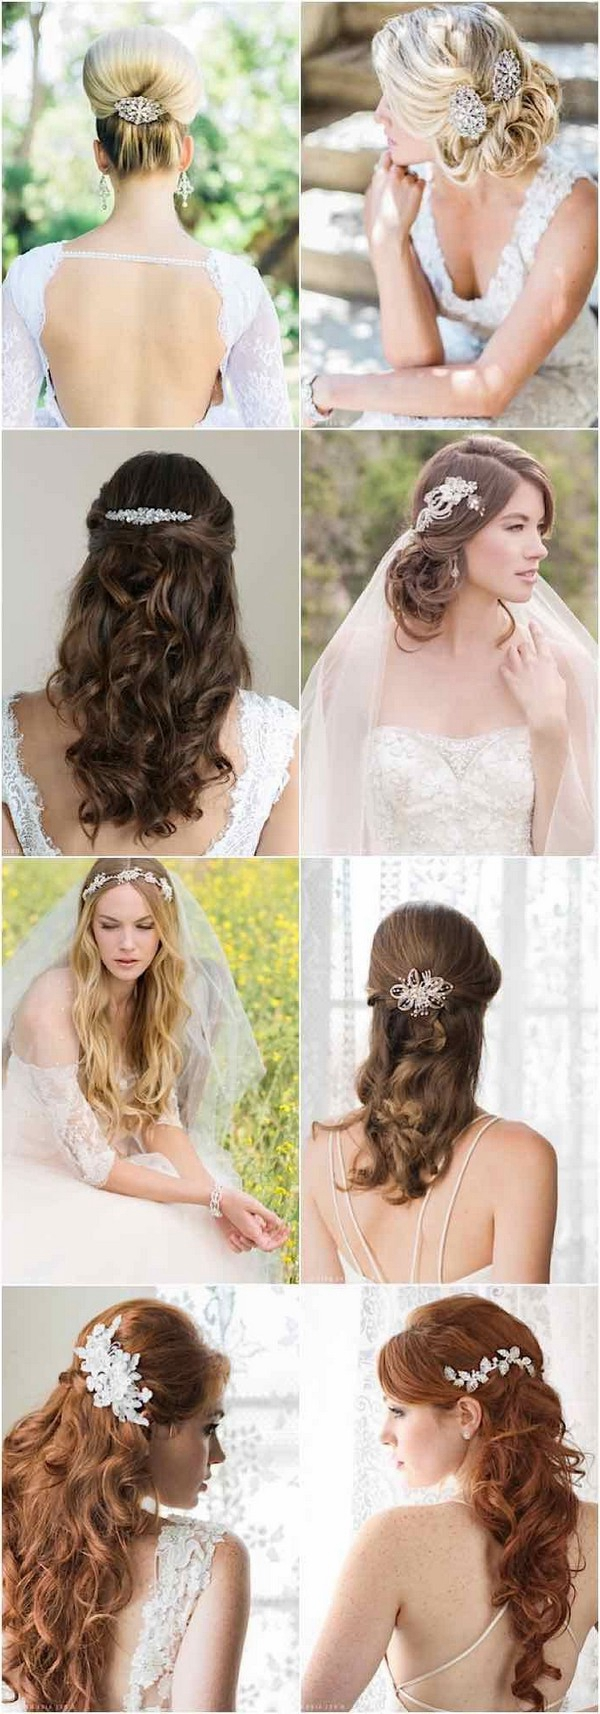 wedding-hairstyles-with-gorgeous-accessories-from-bel-aire-bridal